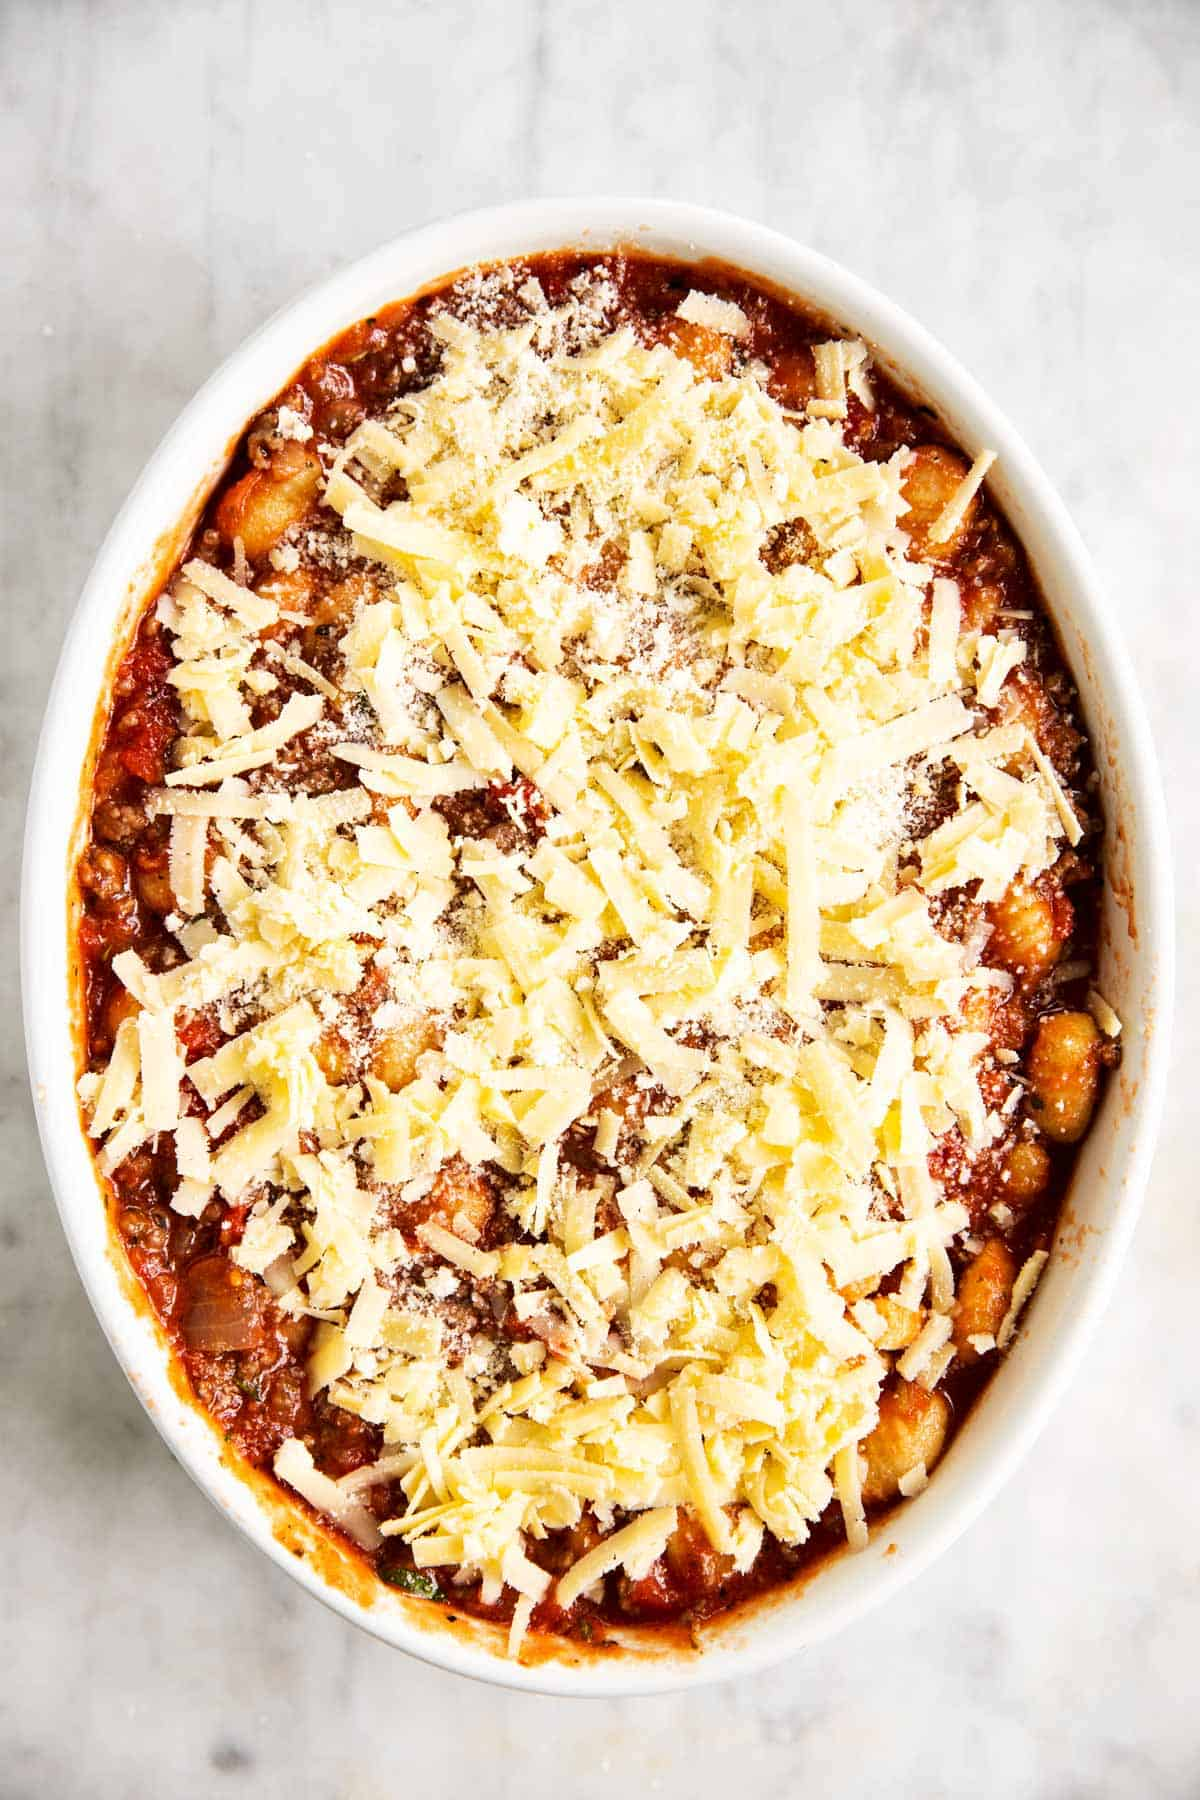 gnocchi, ground beef and tomato sauce mixture in white casserole dish covered with cheese